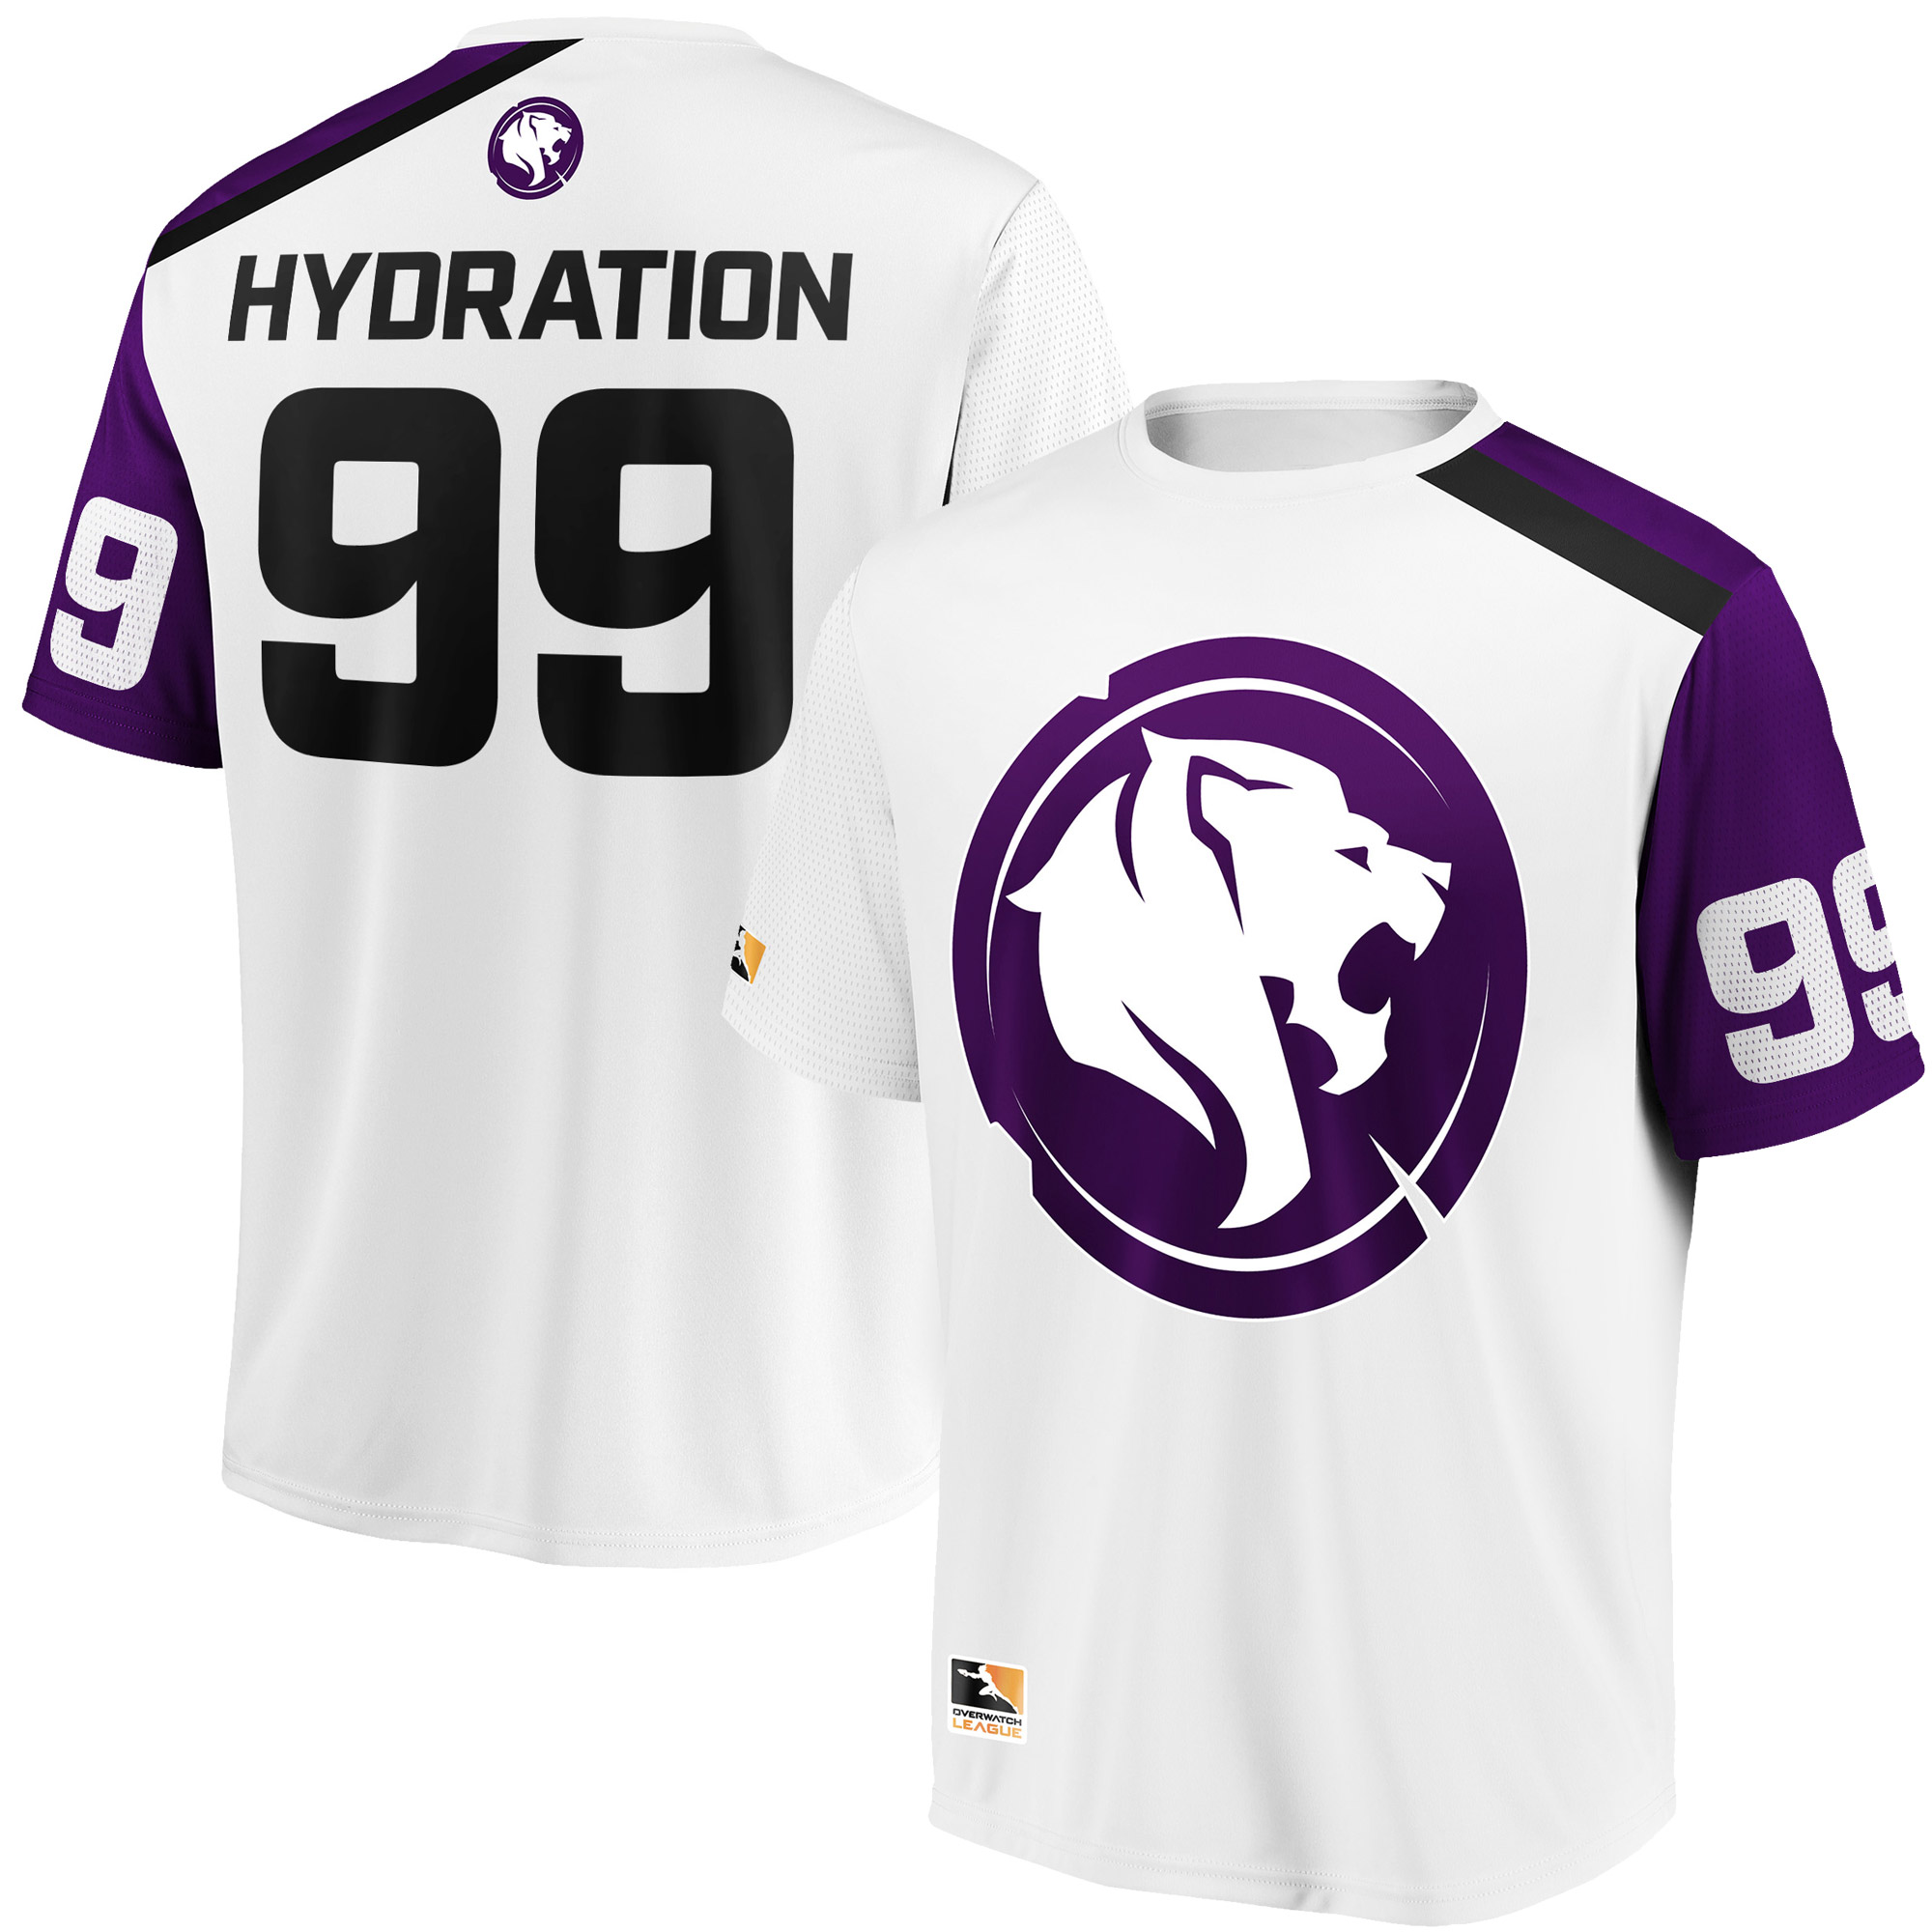 Hydration Los Angeles Gladiators Overwatch League Replica Away Jersey - White